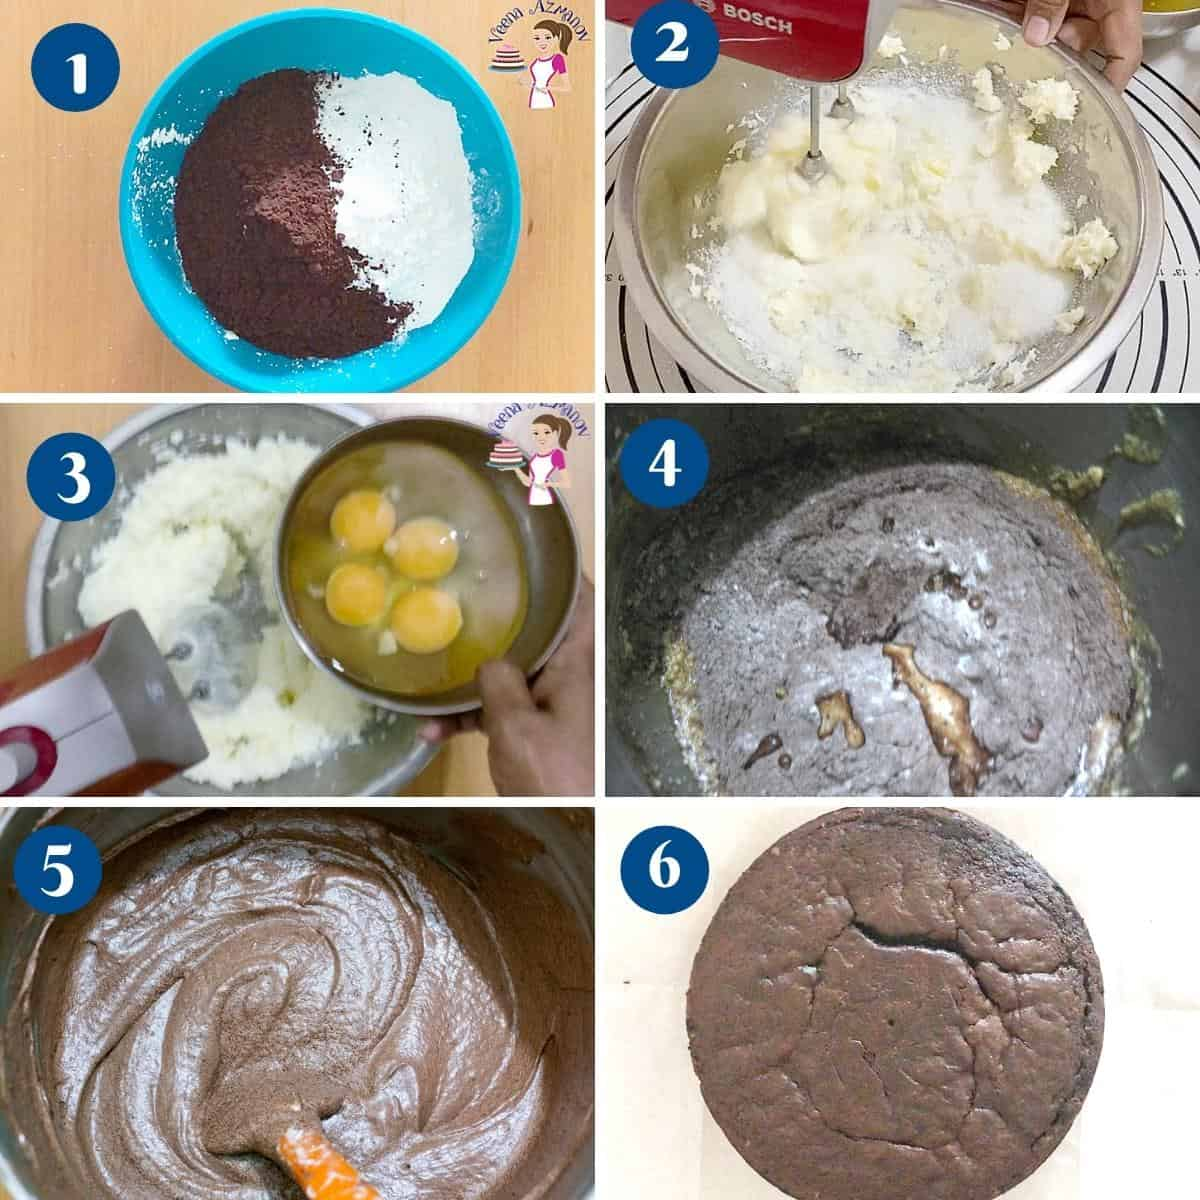 Progress pictures collage making the chocolate sponge cake.